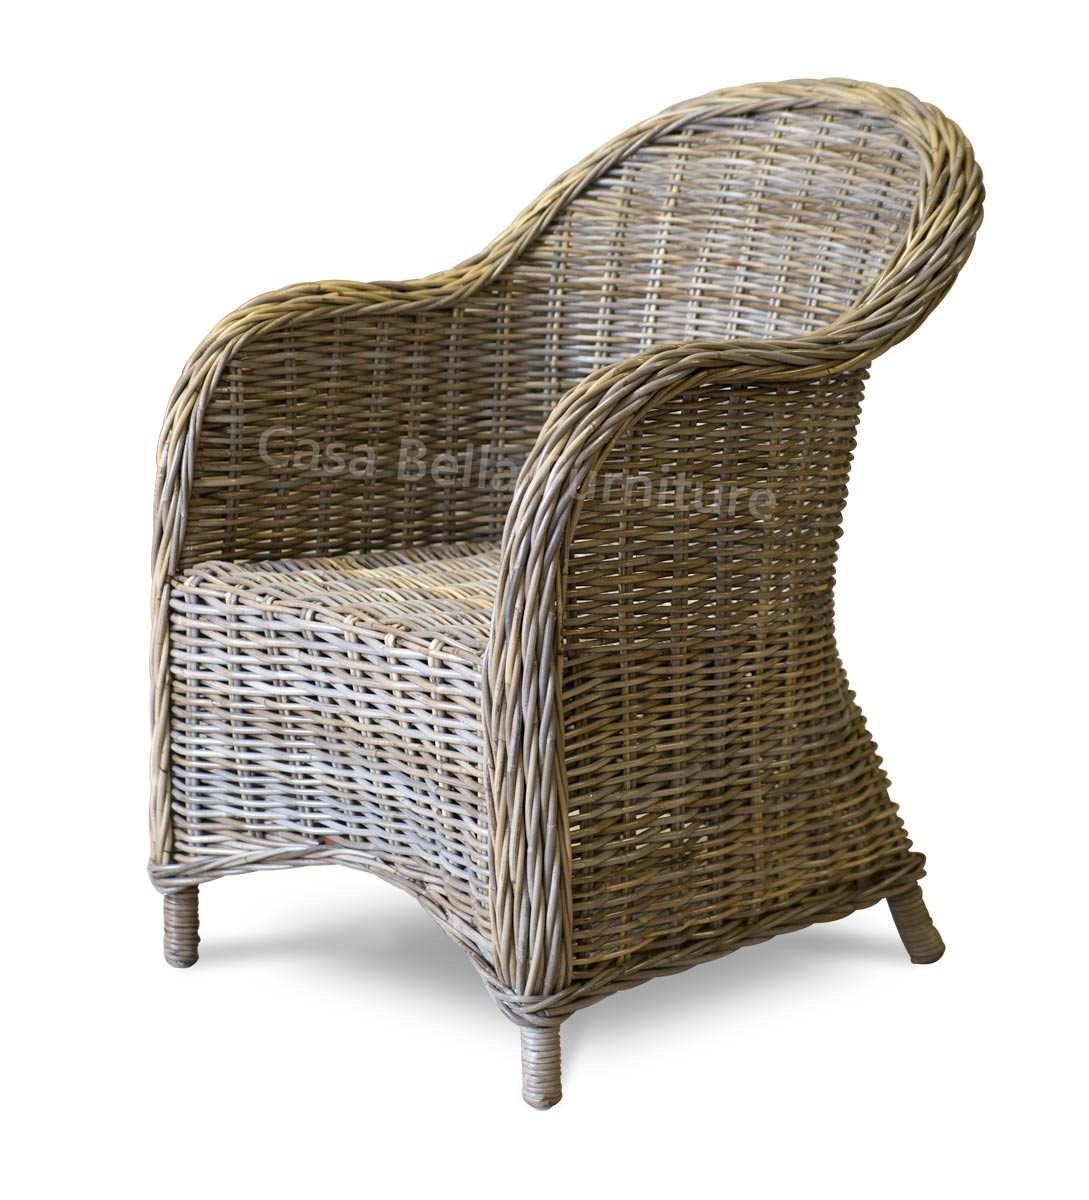 Kubu rattan armchair casa bella furniture uk for Bamboo furniture uk